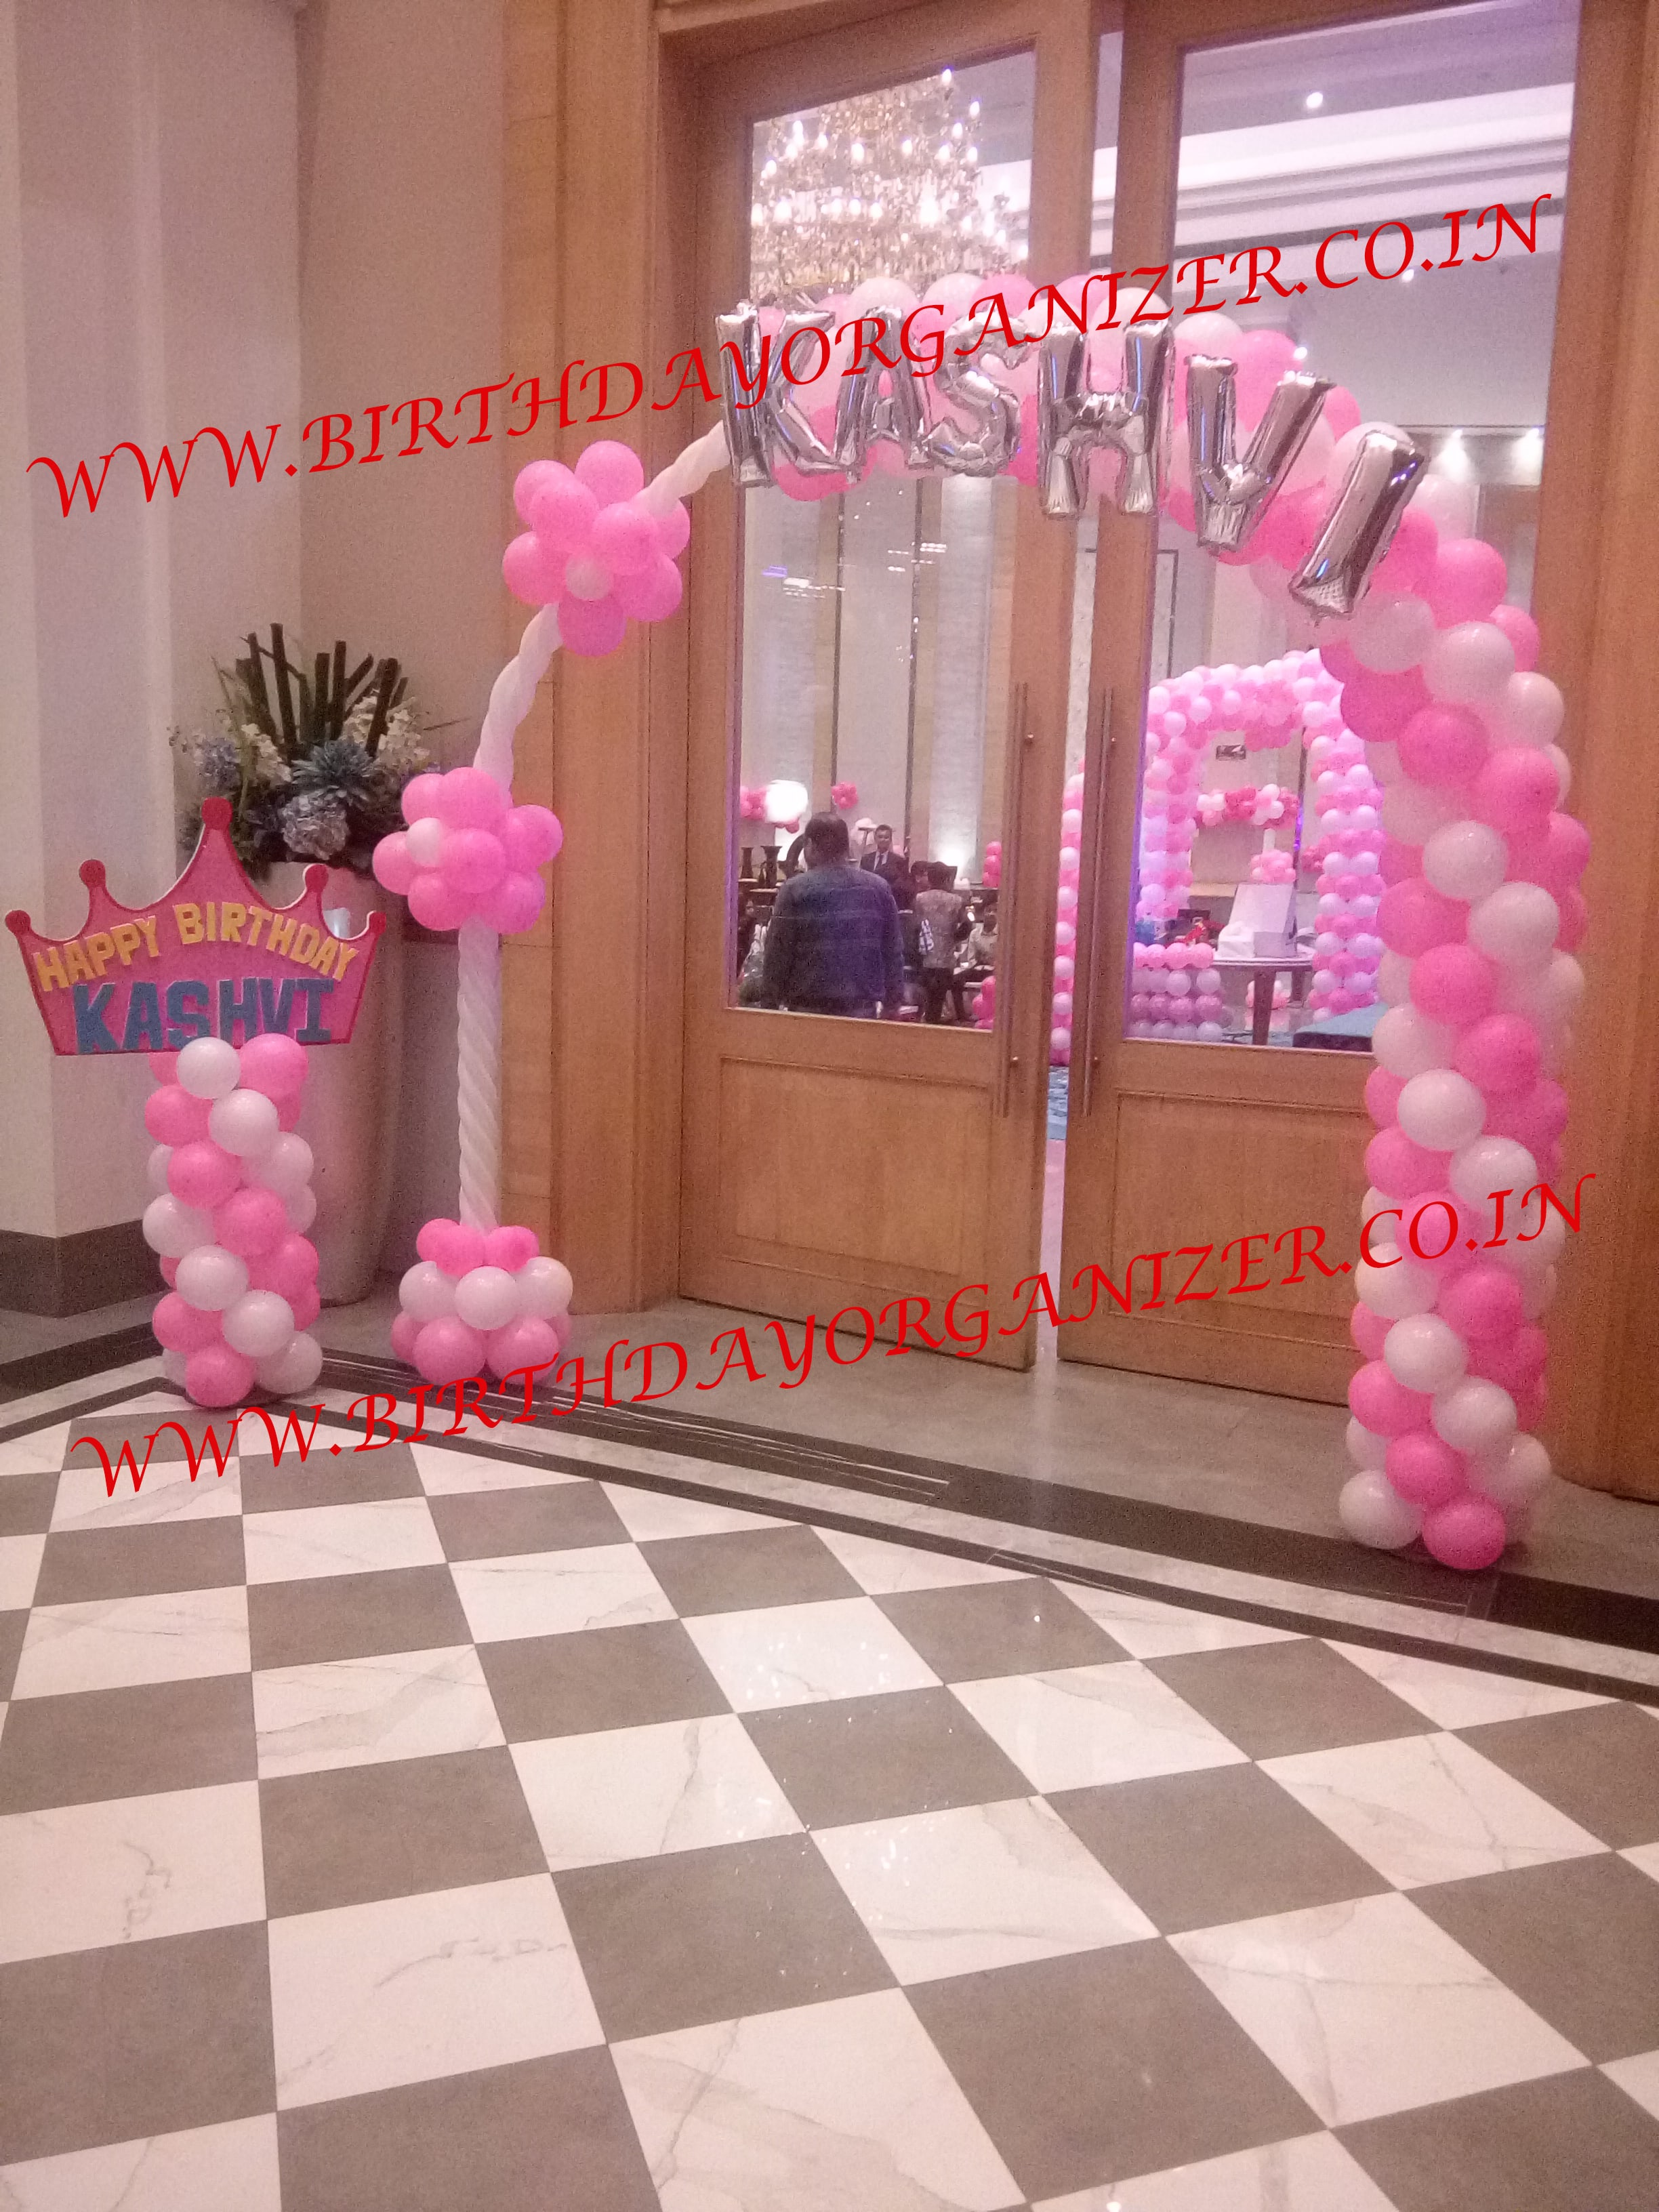 princess girls theme party organizer in noida, delhi, ncr, gurgaon, princess girls theme party planner in noida, delhi, ncr, gurgaon, princess girls theme party ideas in noida delhi ncr gurgaon